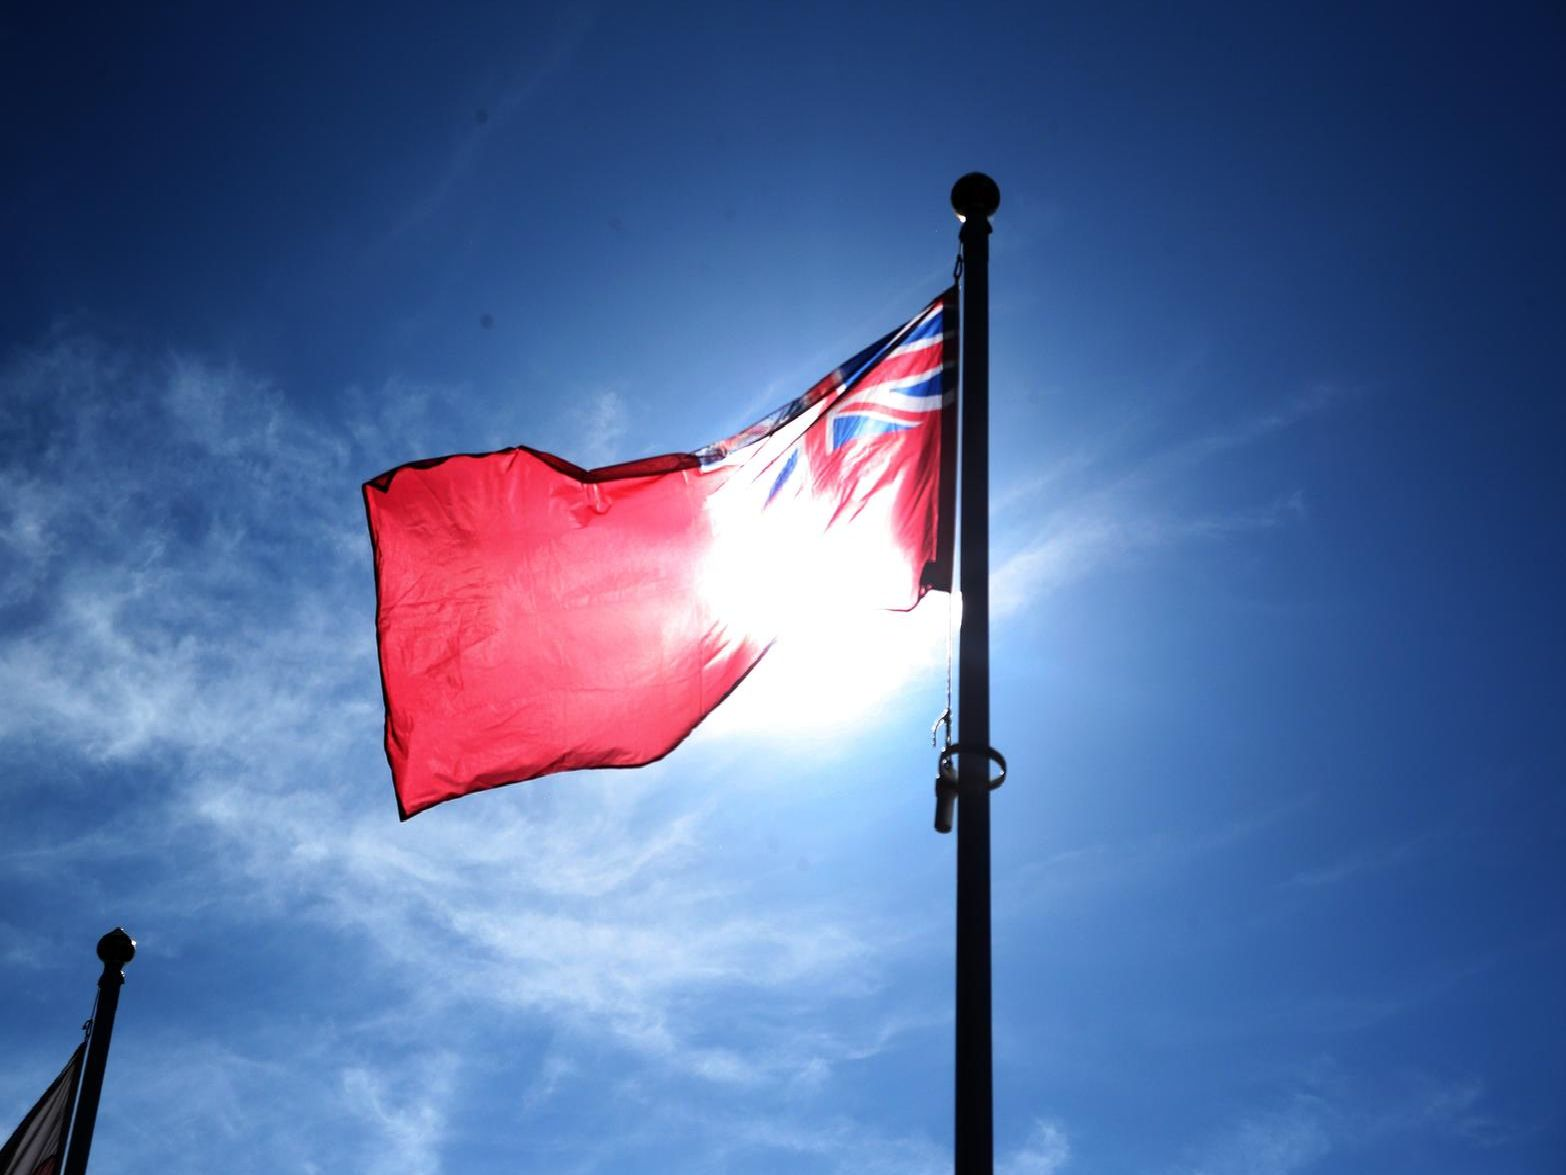 The Ensign was raised.